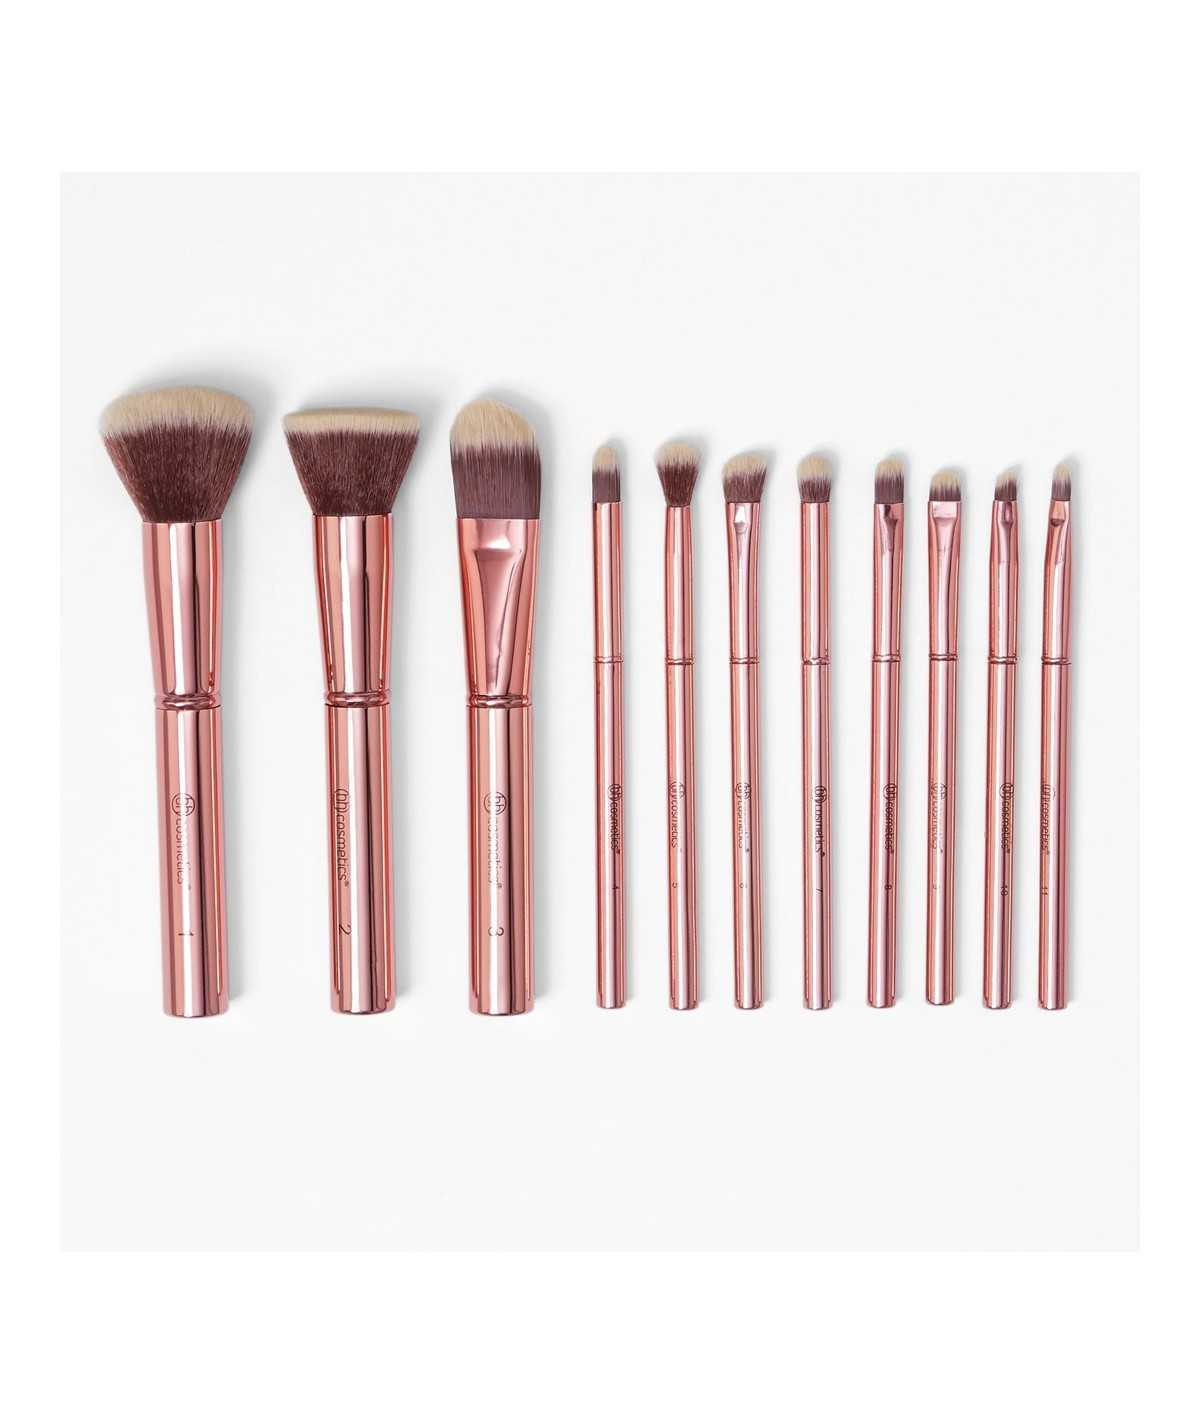 Bh Cosmetics Metal Rose - 11 Piece Brush Set